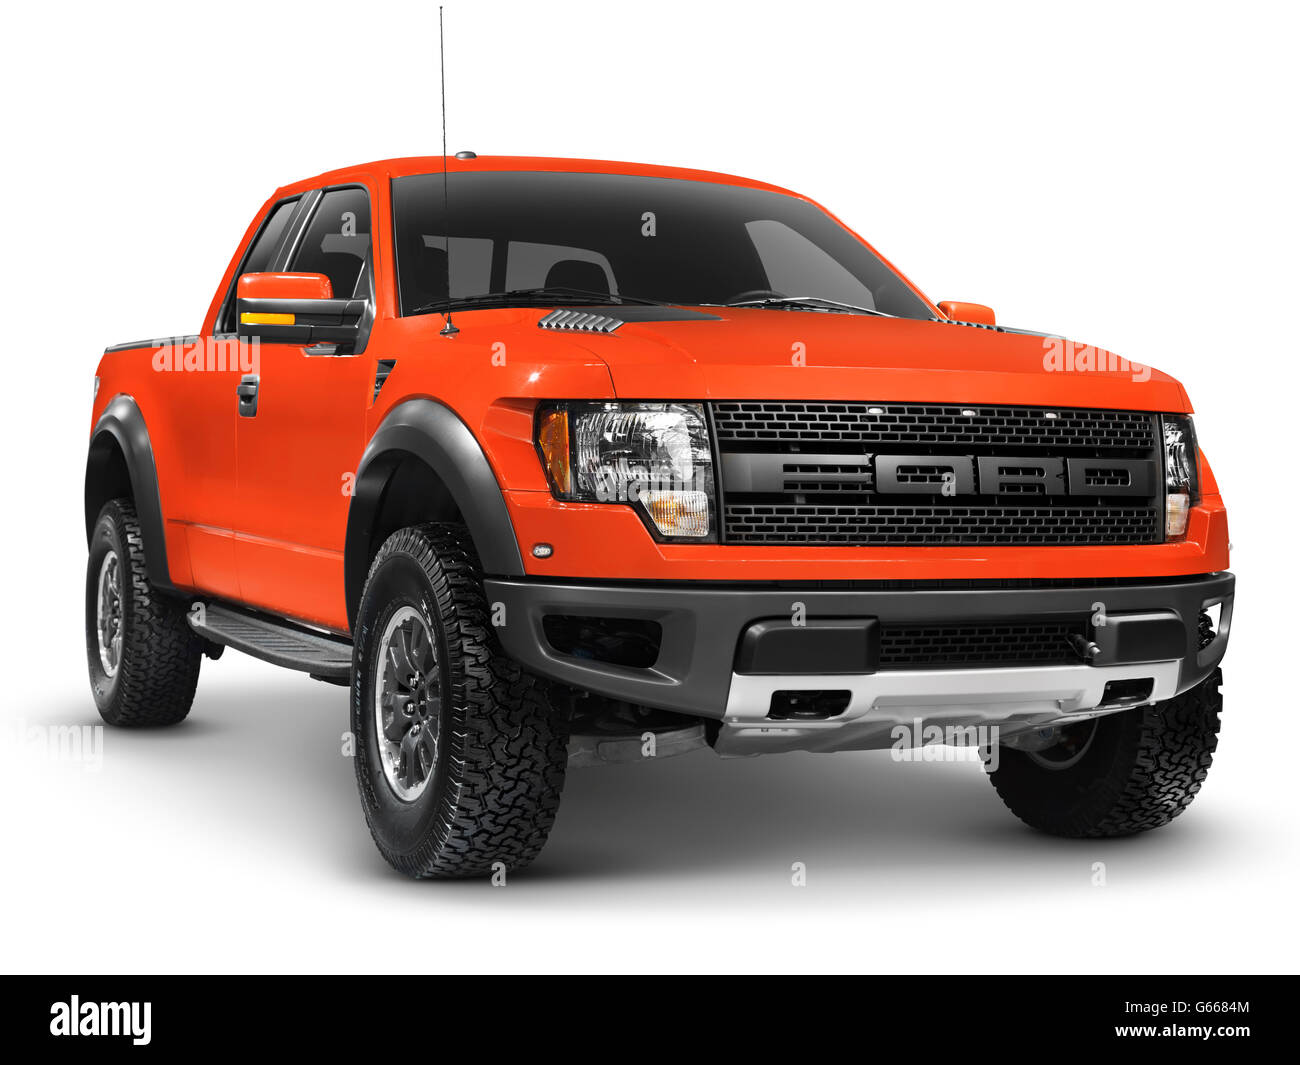 Red 2010 Ford F-150 Raptor SVT truck - Stock Image